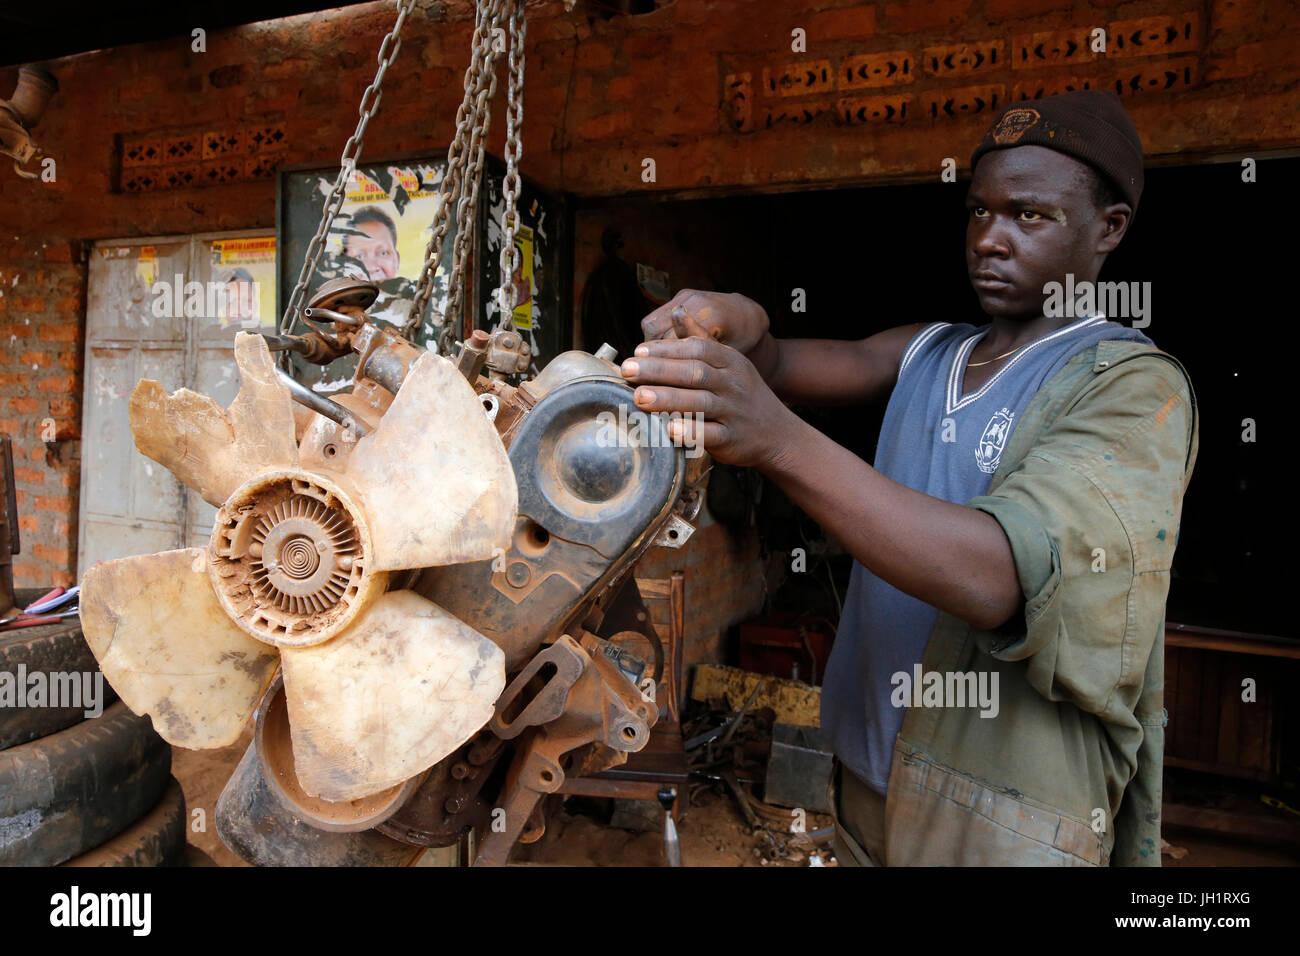 Apprentice working in a garage financed with a loan from ENCOT microfinance. Uganda. - Stock Image